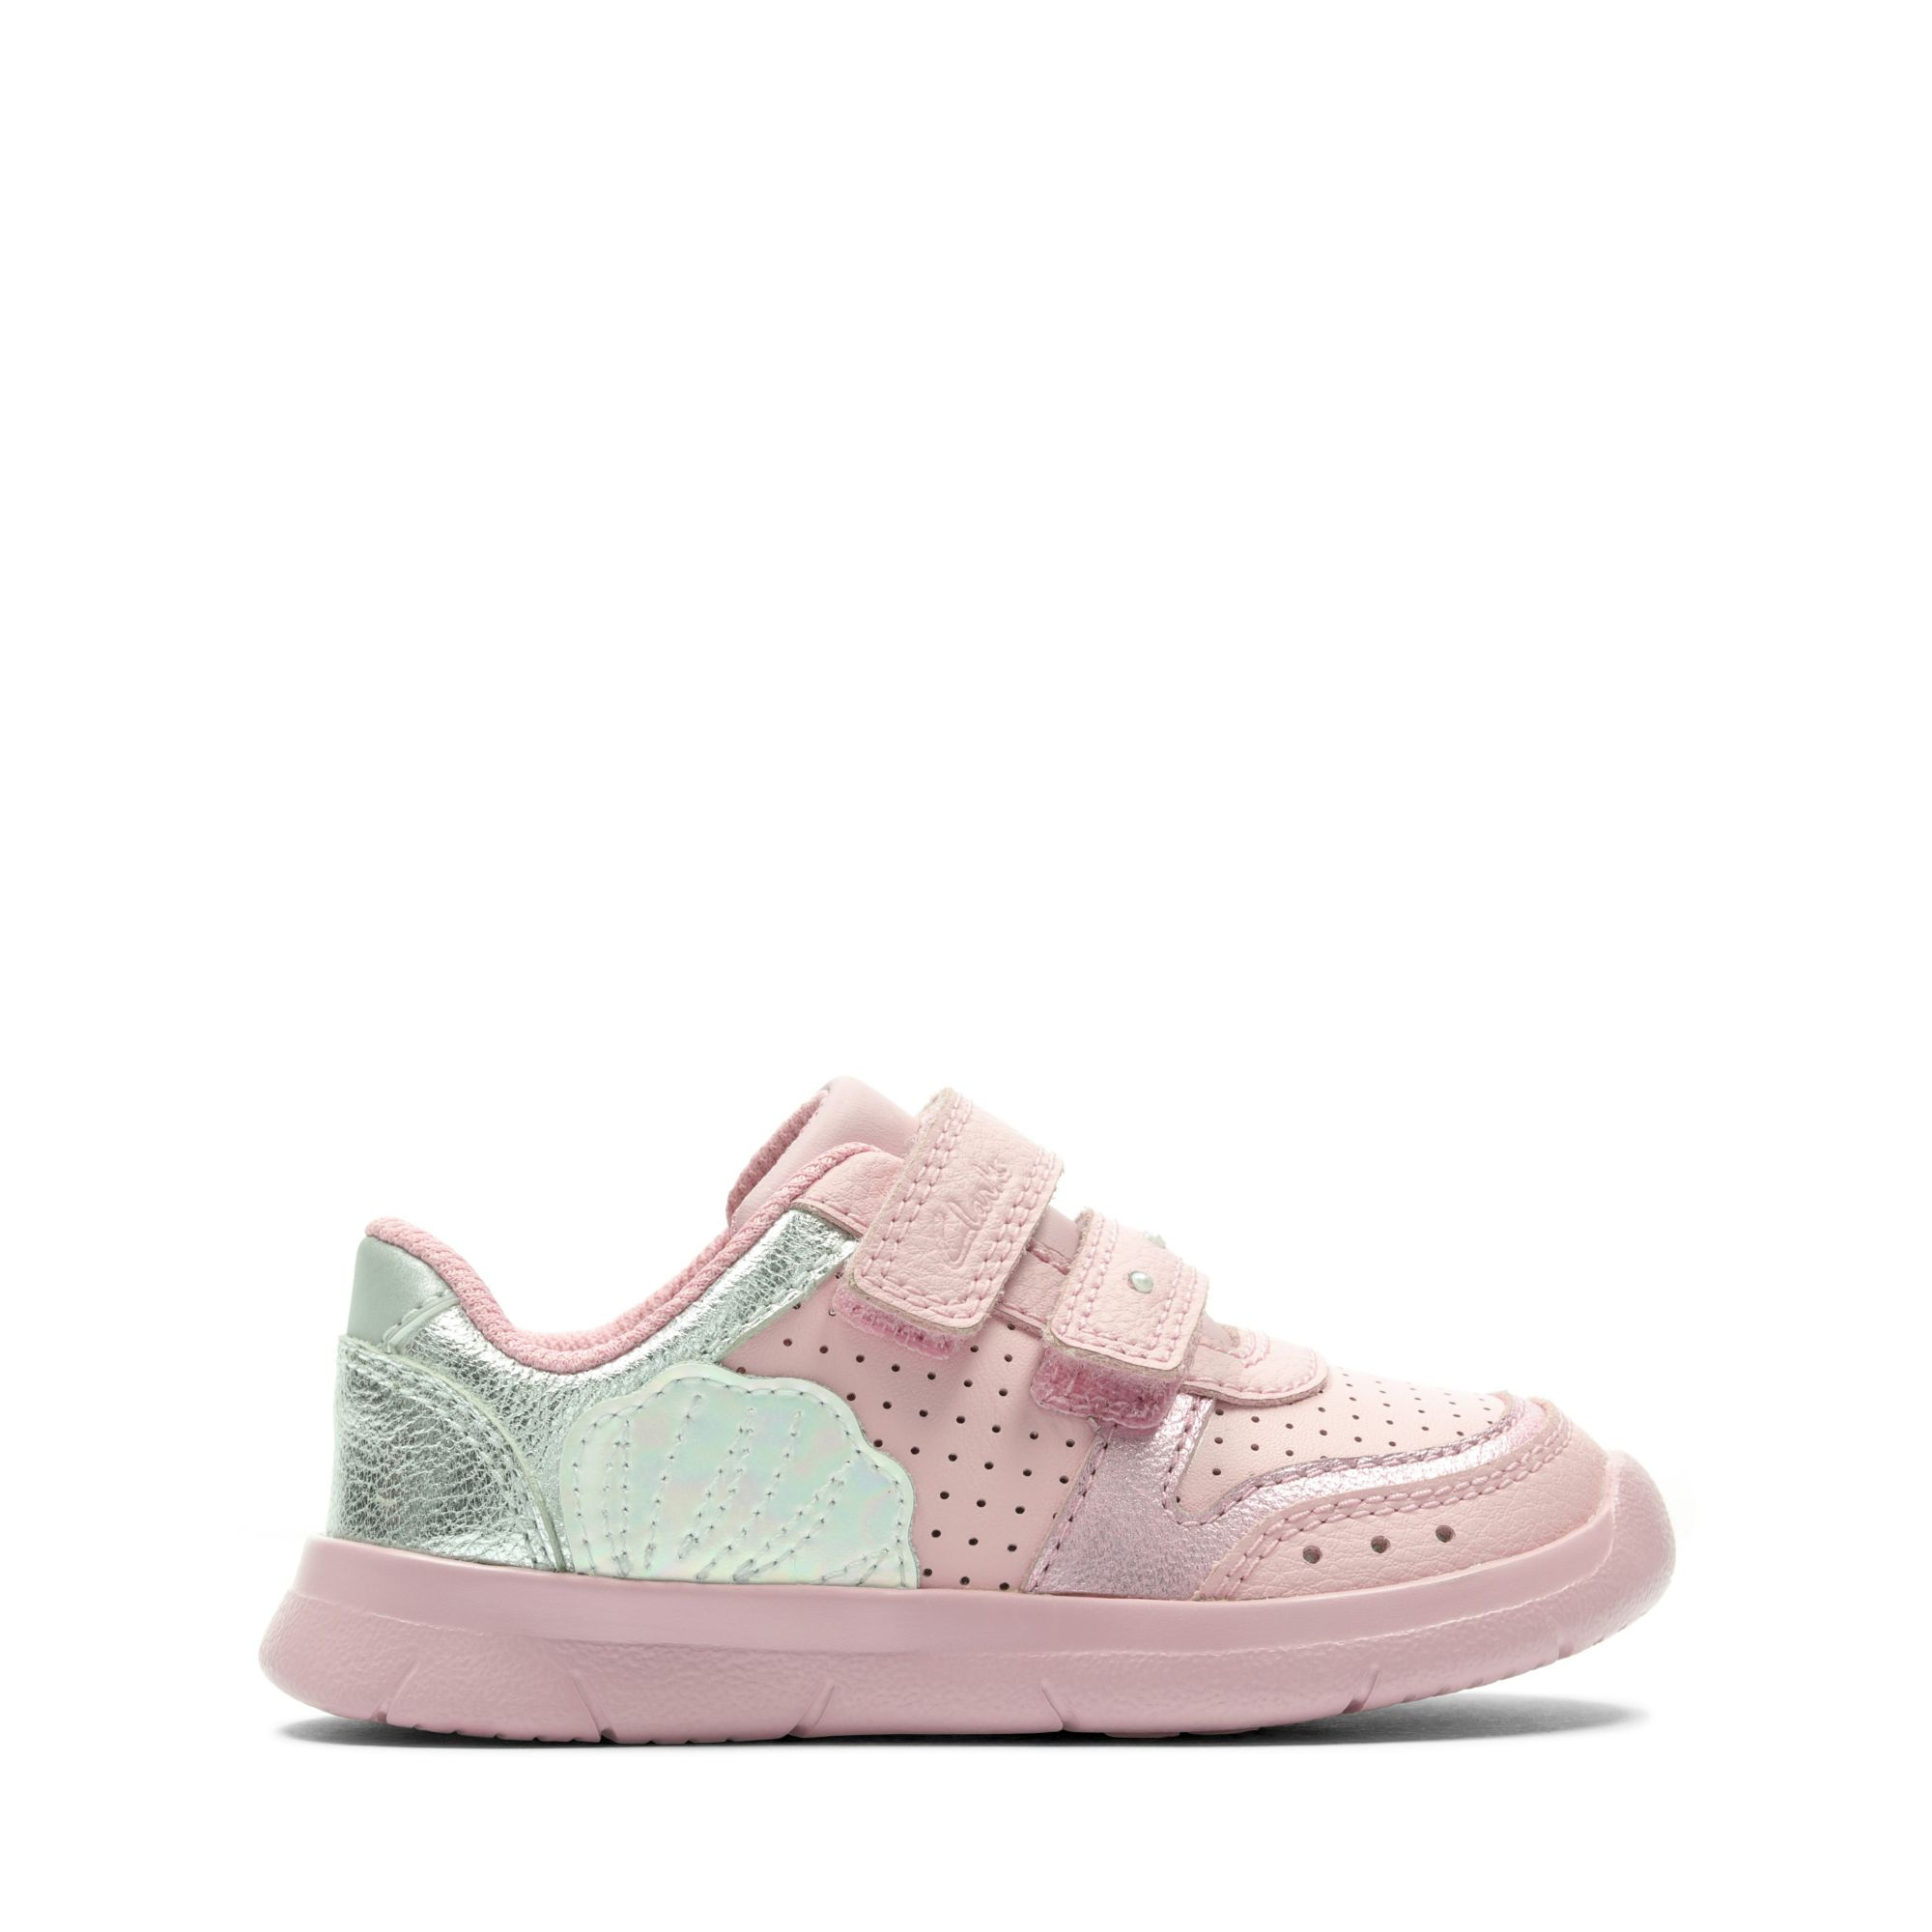 Clarks Ath Shell Toddler – Leather